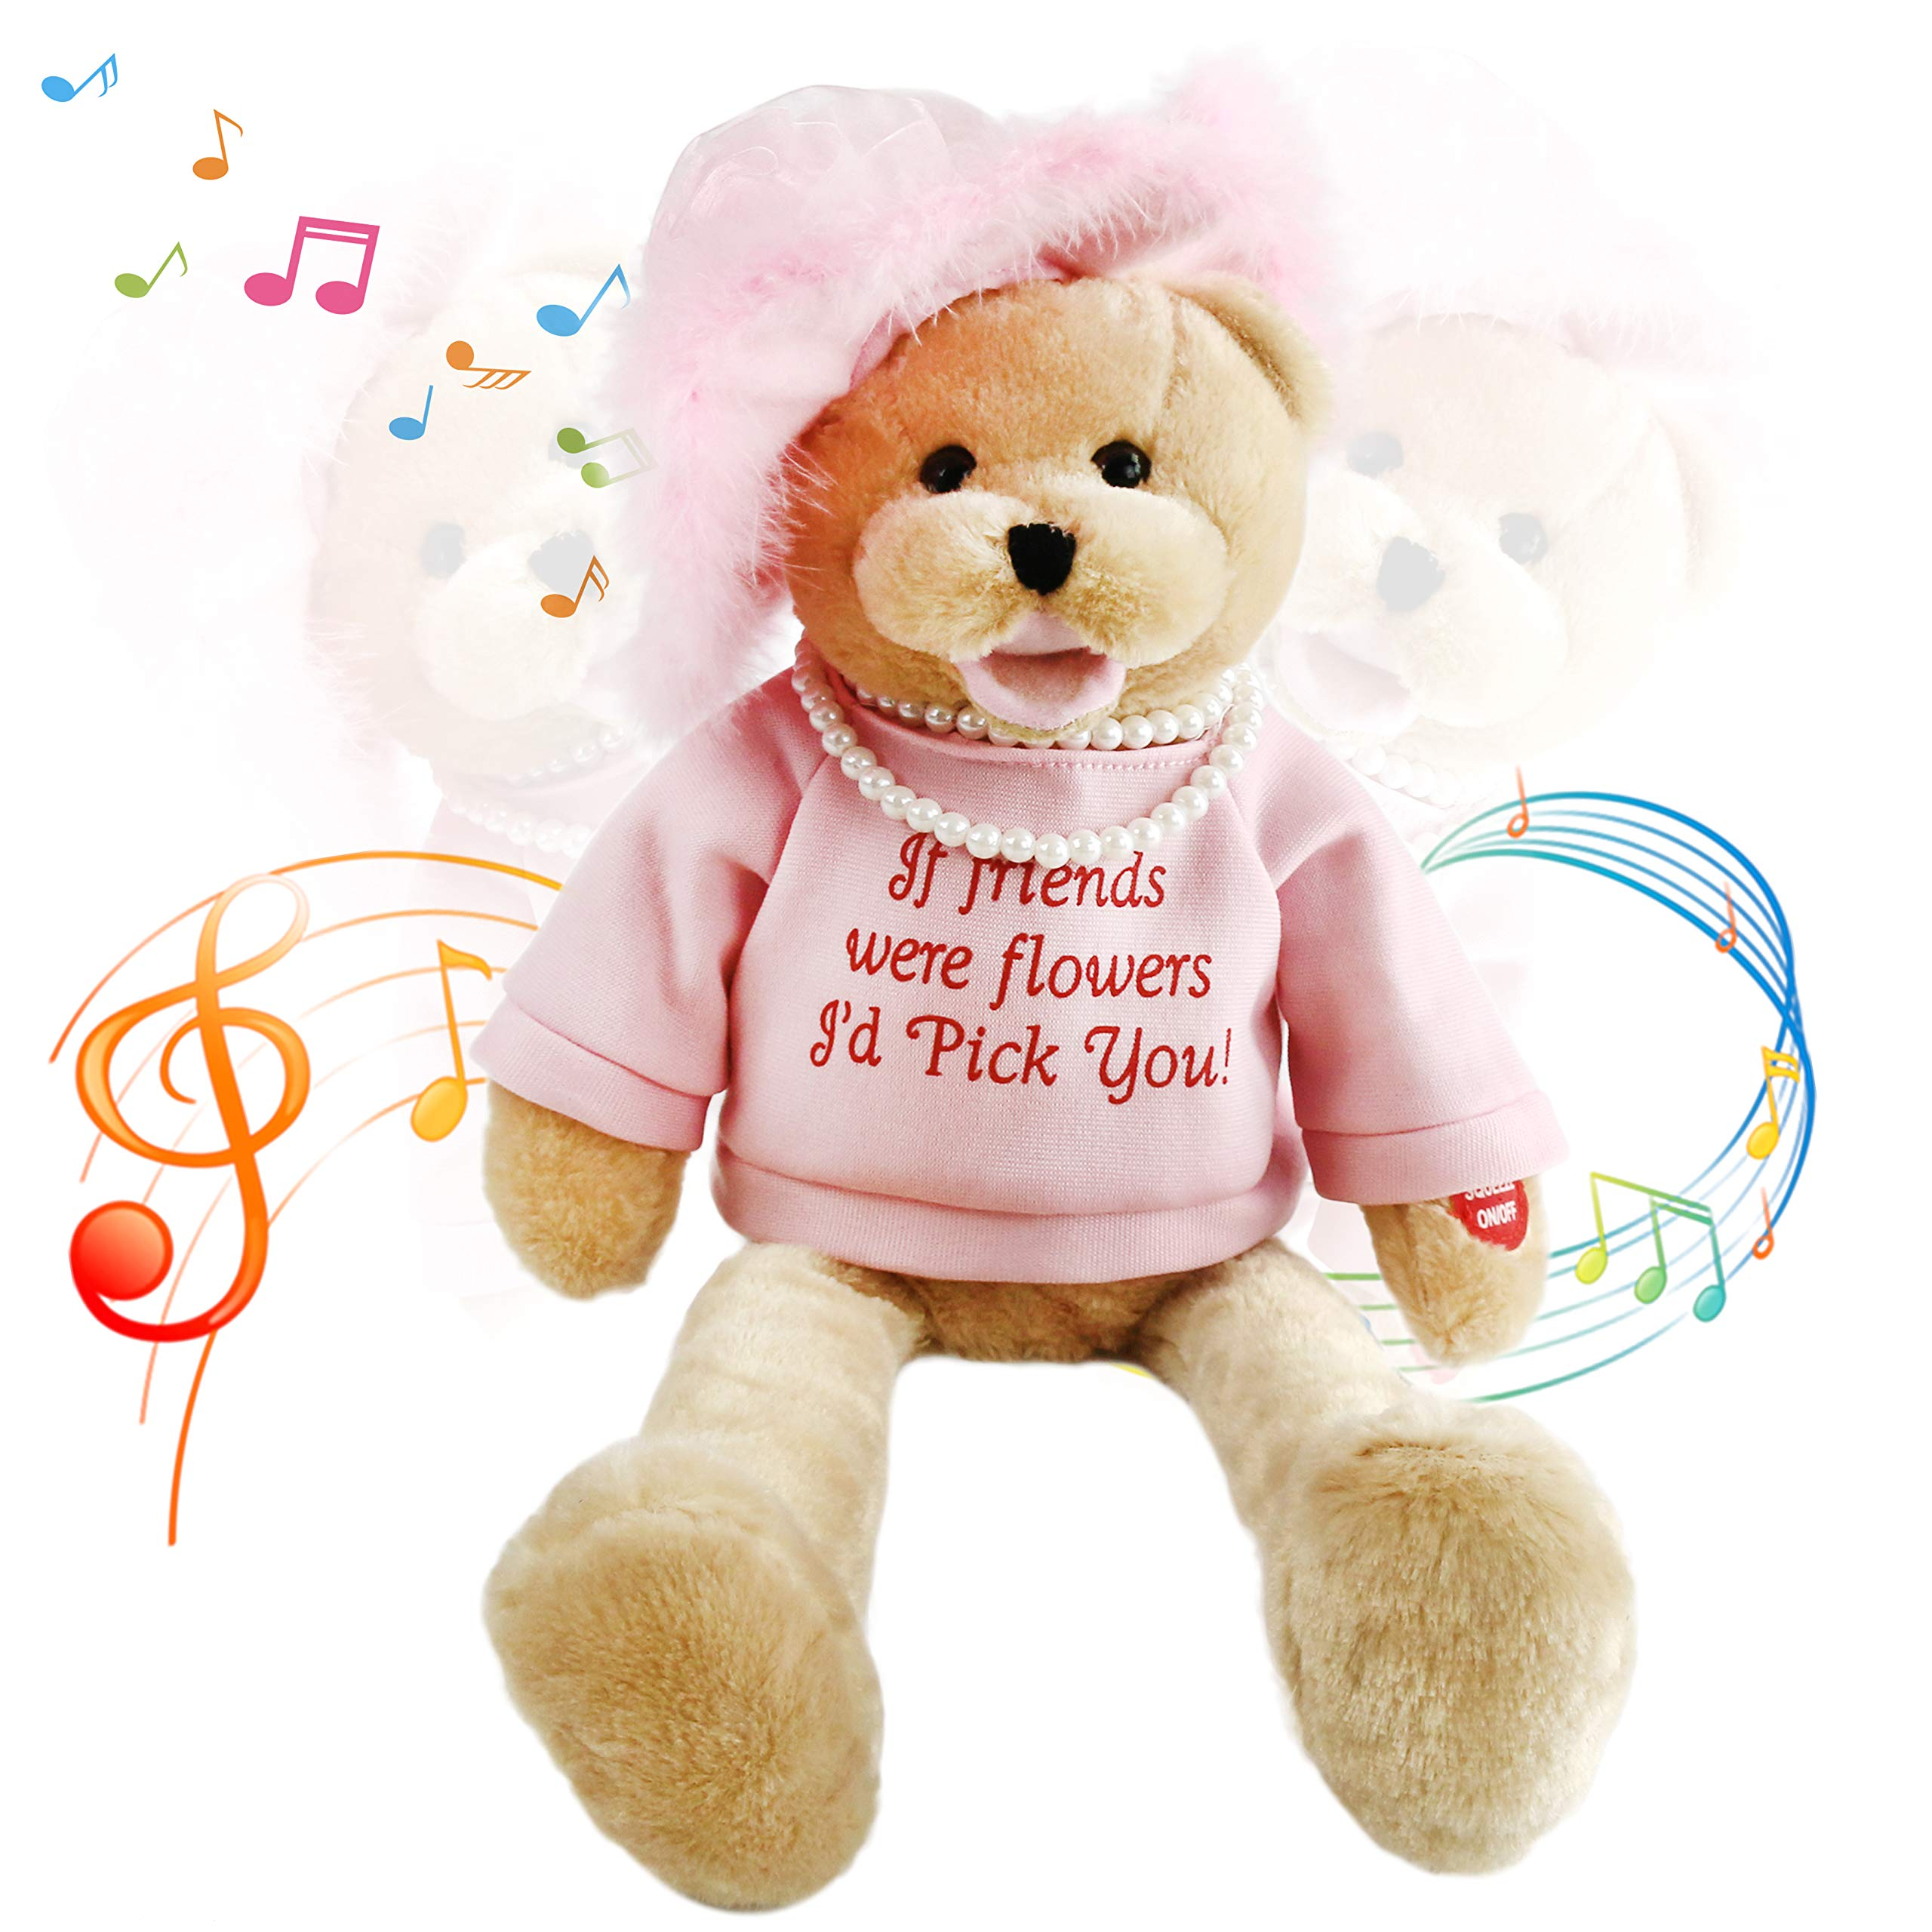 Houwsbaby Musical Teddy Bear with Pearl Sings ''That's What Friends are for'' Interactive Stuffed Animal Shaking Head Animated Plush Toy Gift for Friendship, 20 inches(Pink) by Houwsbaby